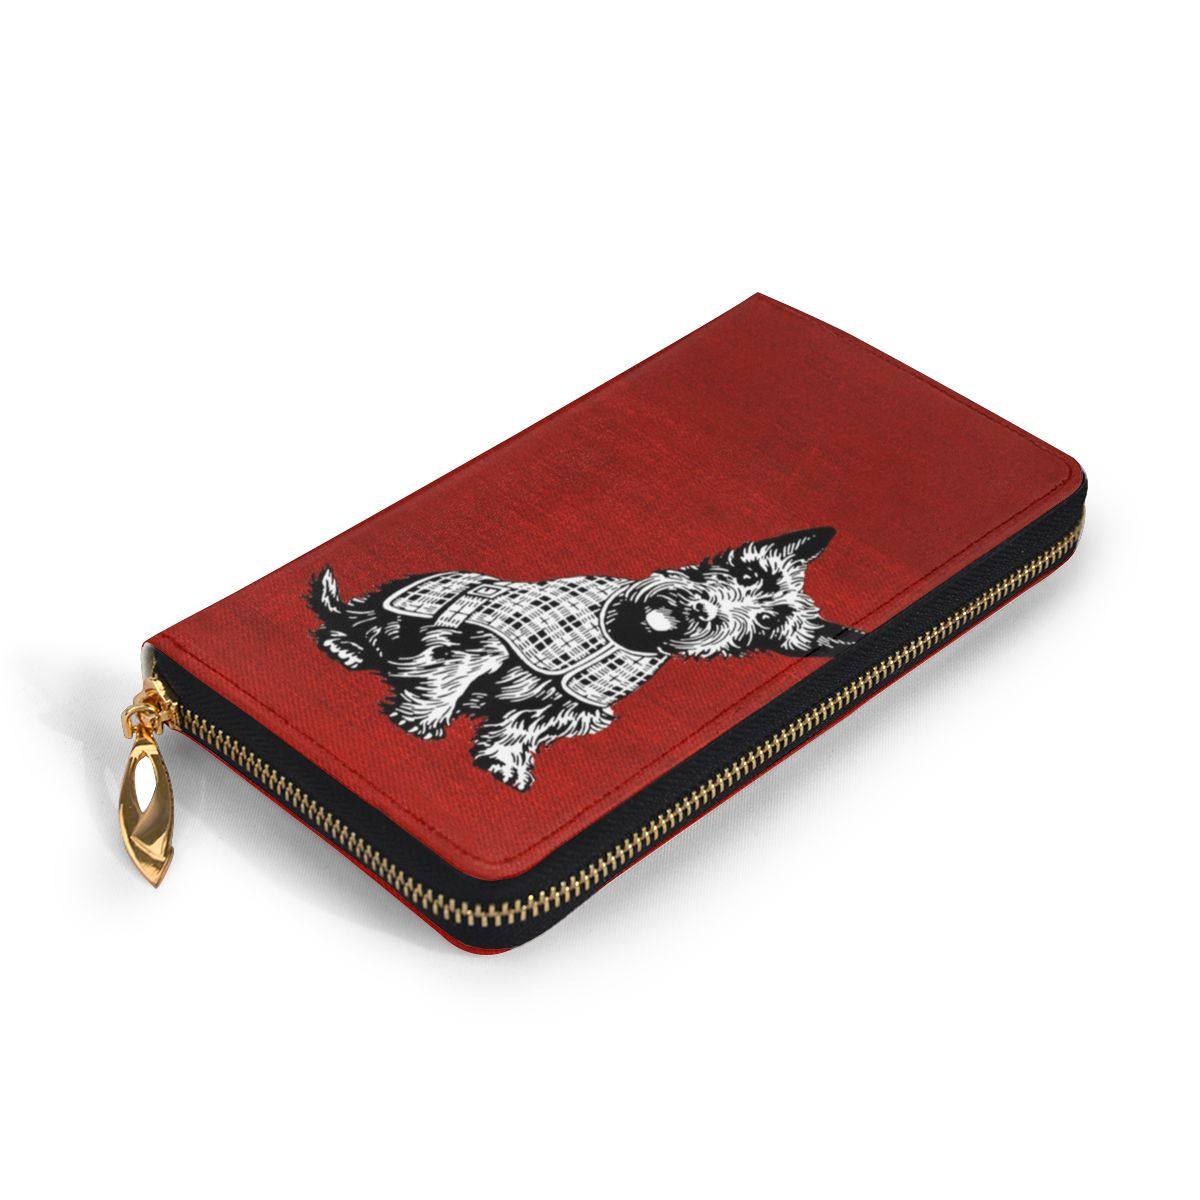 NOISYDESIGNS Women Genuine Leather Wallets Westie Dog Print Leather Clutch Bag Womens High Quality Girls Purses Carteras Mujer